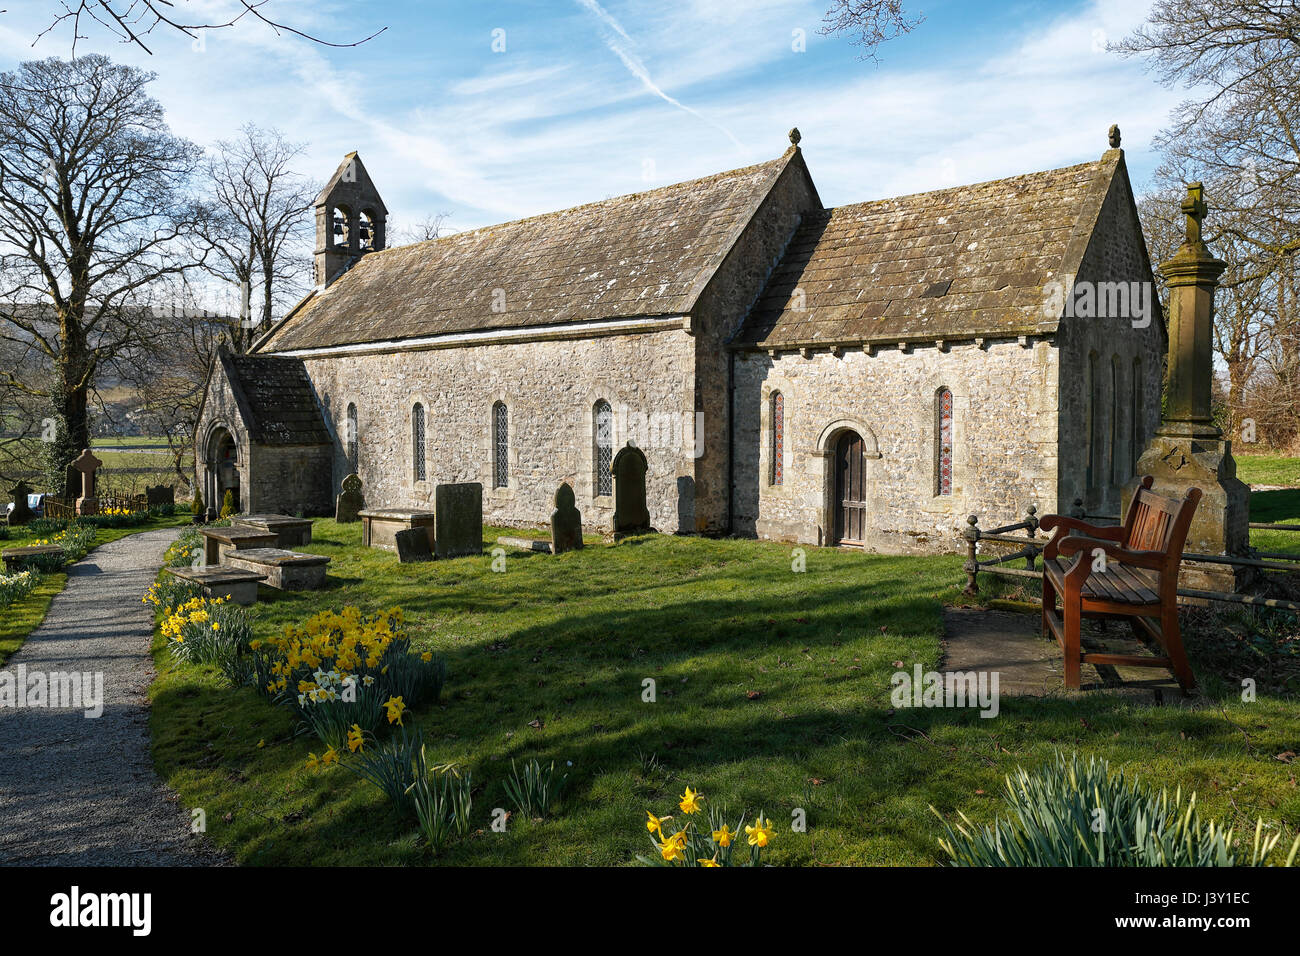 Conistone village St. Marys church North Yorkshire in springtime with daffodils blooming. Stock Photo